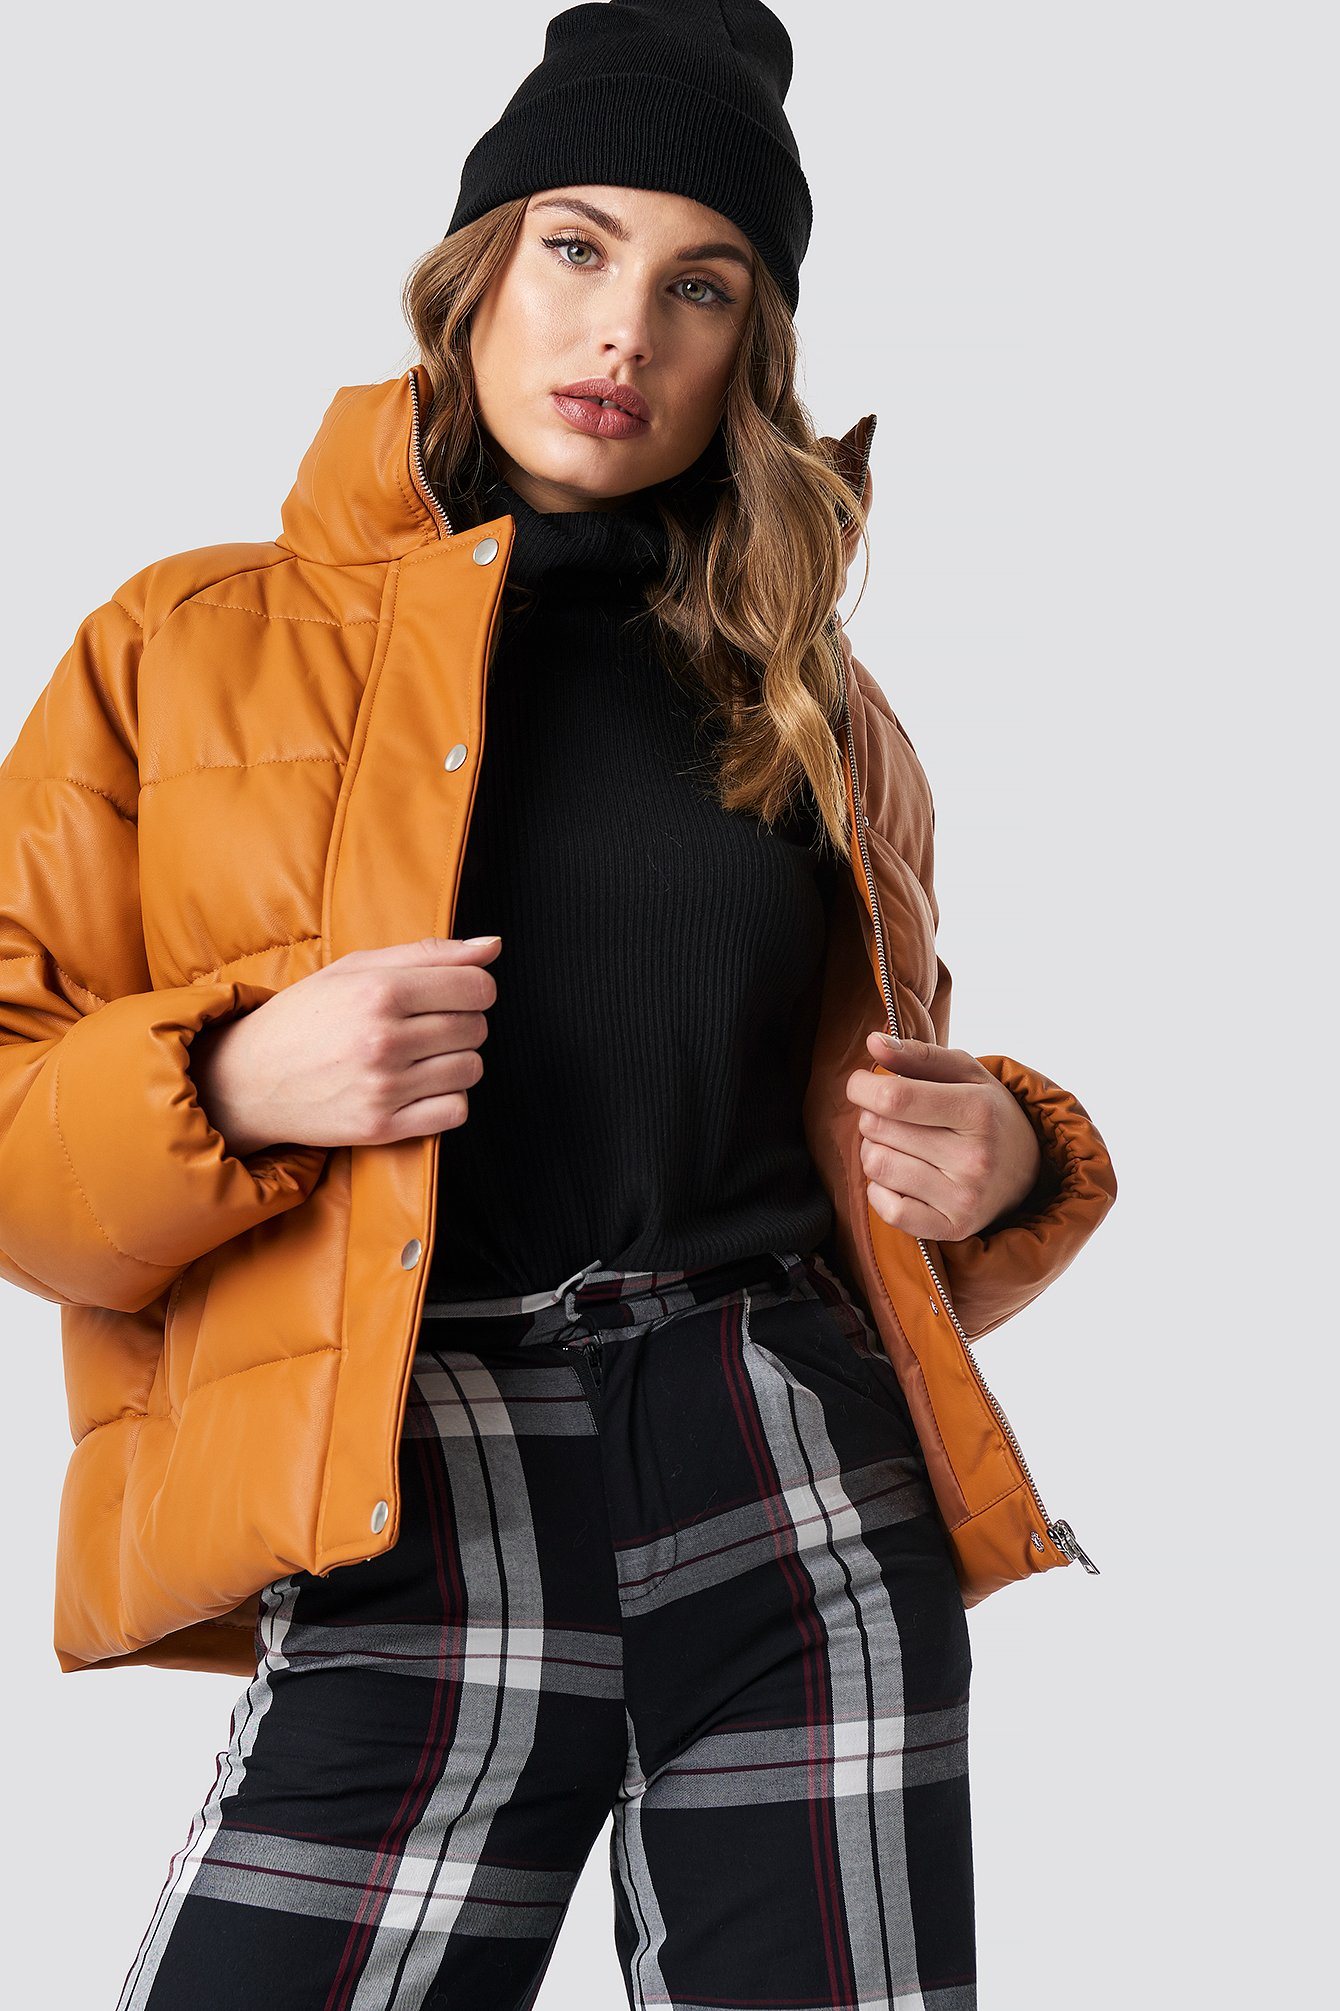 na-kd trend -  Padded PU Leather Jacket - Brown,Orange,Copper